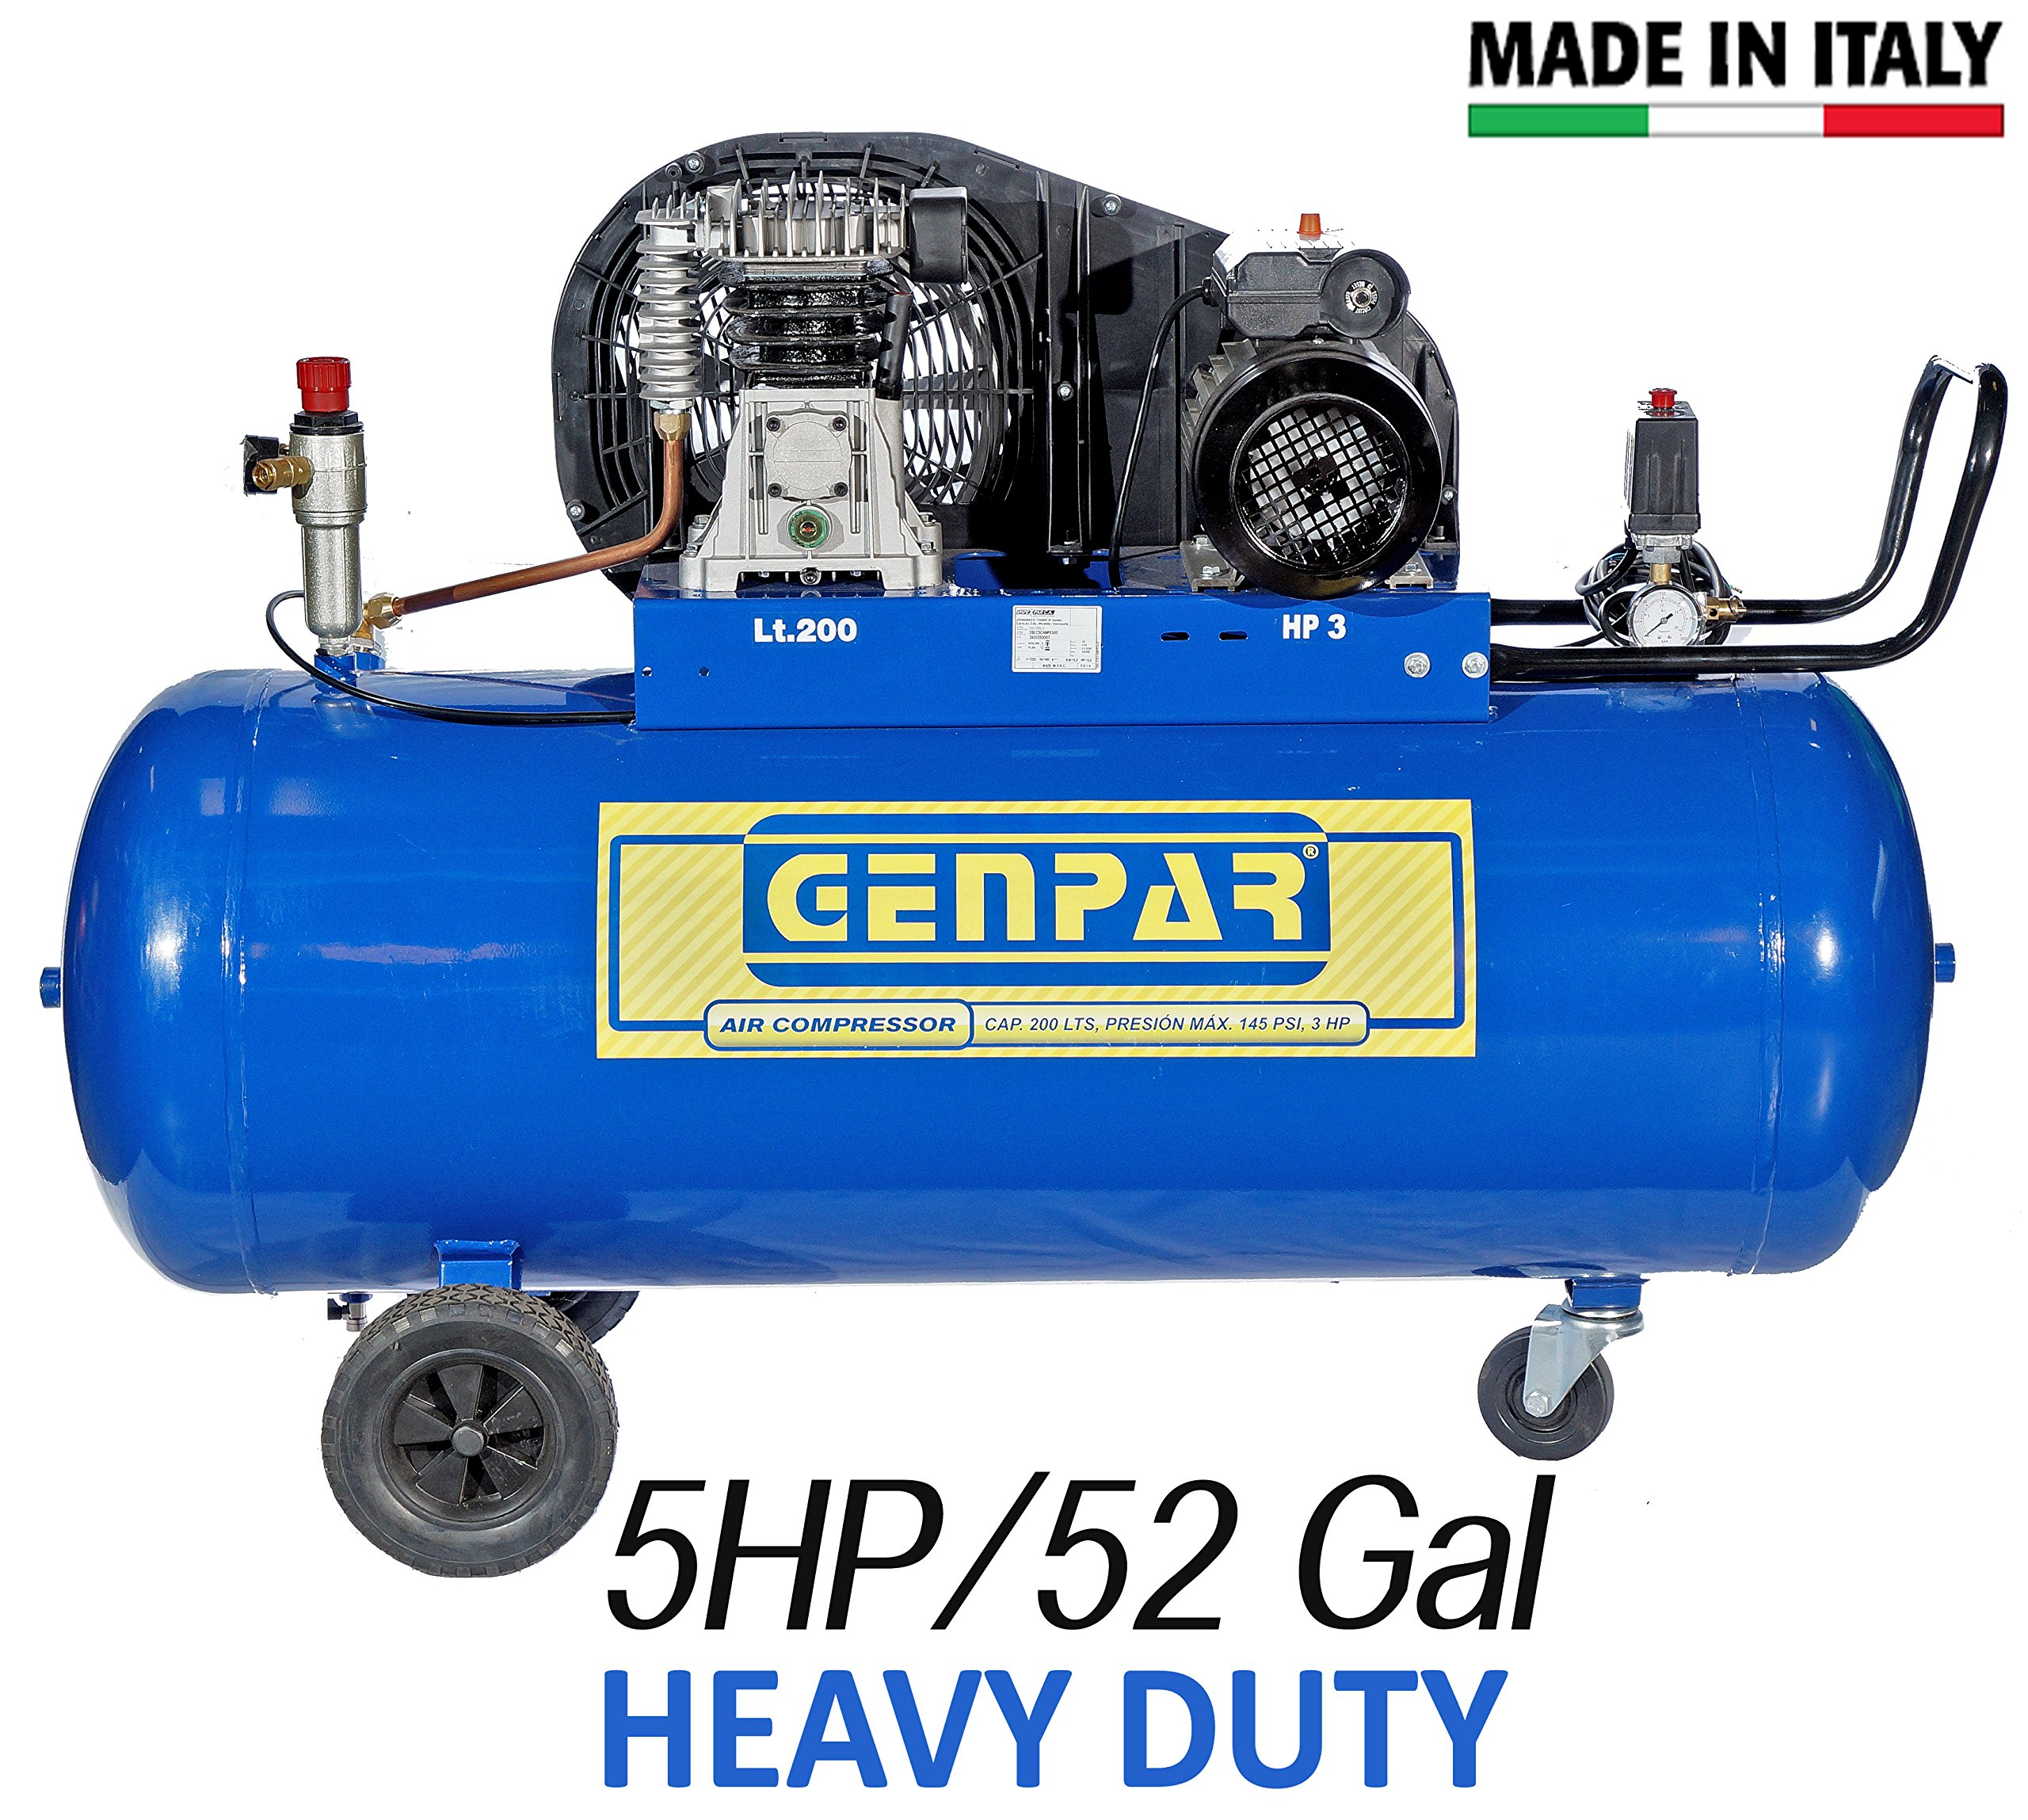 5HP 52-Gal Capacity Tank PORTABLE AIR COMPRESSOR Professional Commercial HEAVY DUTY 22.6 CFM ELECTRIC MOTOR 220 VOLTS 3 PHASE Max Pressure 160PSI Belt Driven Contractors Workshop GENPAR MADE IN ITALY